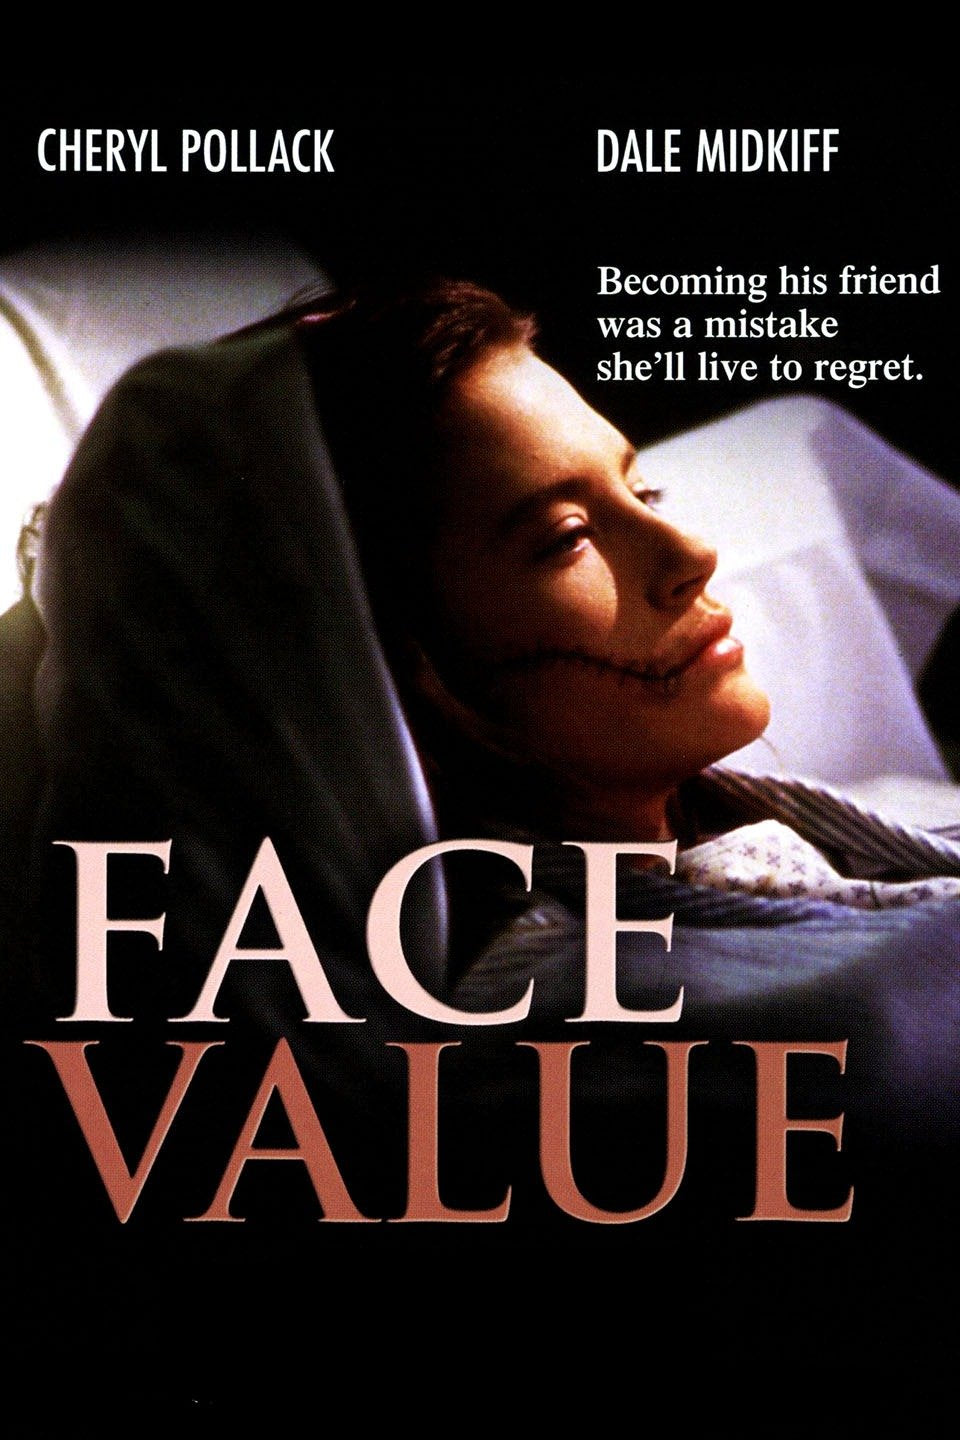 Face Value The Marla Hanson Story  Dvd (1991)